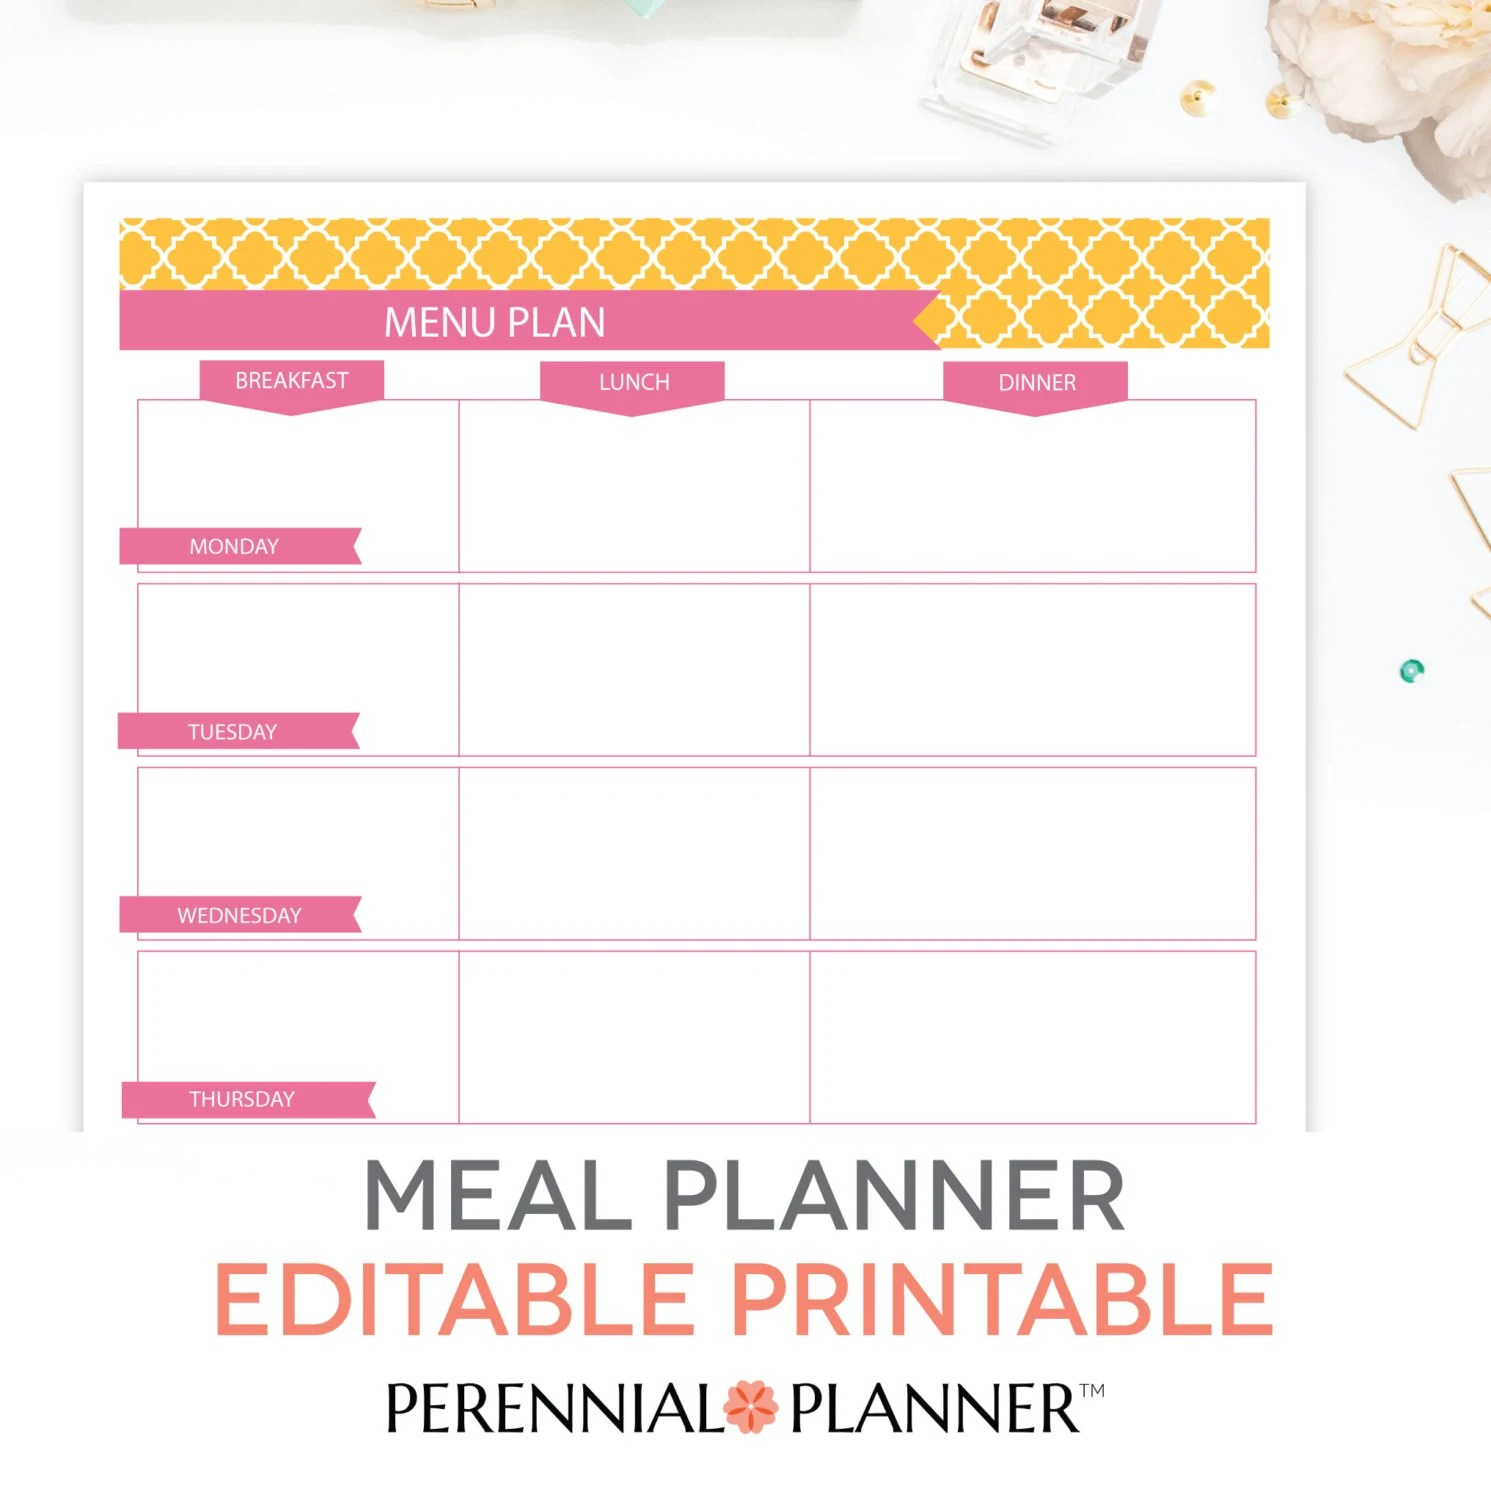 Menu Plan Weekly Meal Planning Template Printable EDITABLE Etsy - menu planning template